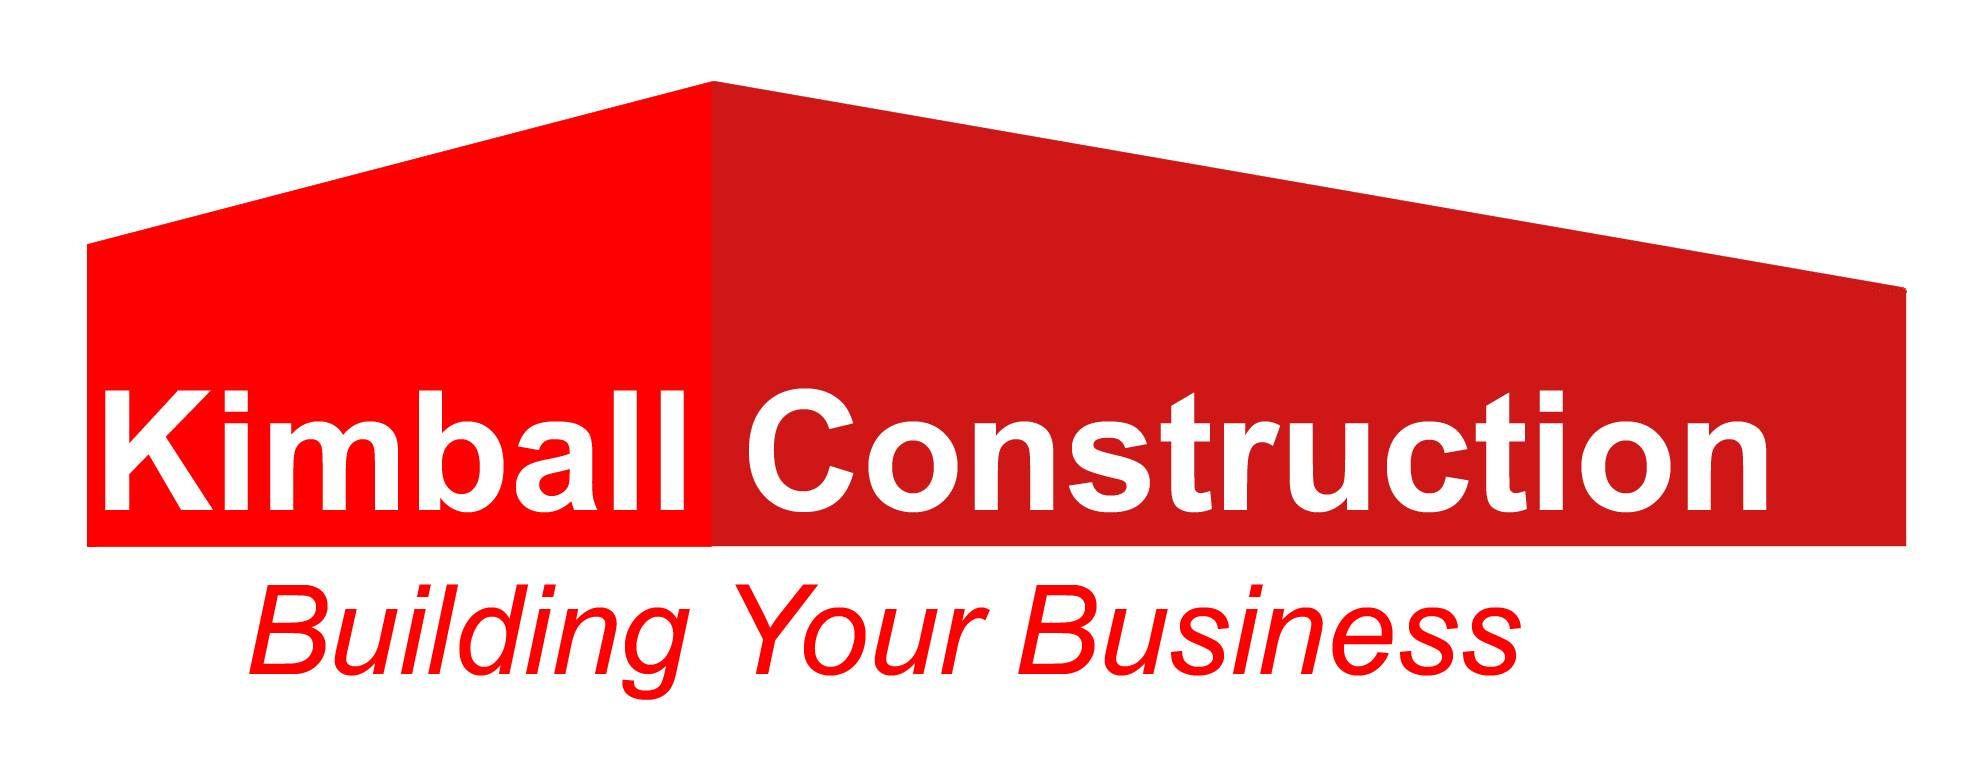 Eugene Building Experts Kimball Construction Win Praise for its Residential and Commercial Work